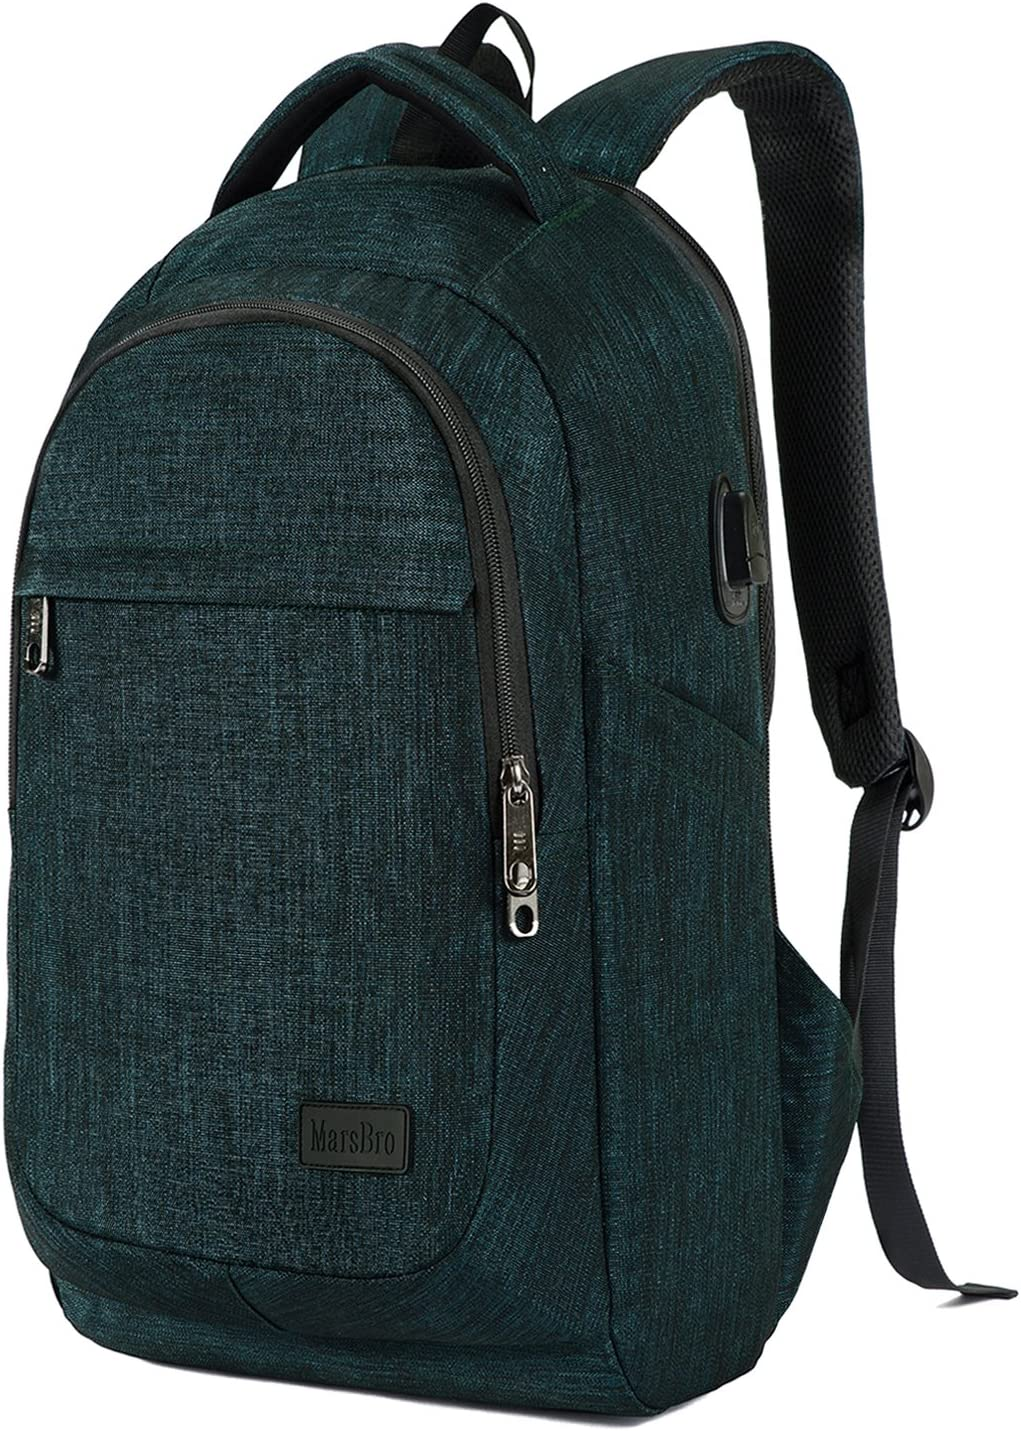 MarsBro Laptop Backpack, Business Travel Gear with USB Charging Port College Water Resistant Anti Theft 15.6 Inch Bag Malachite Green